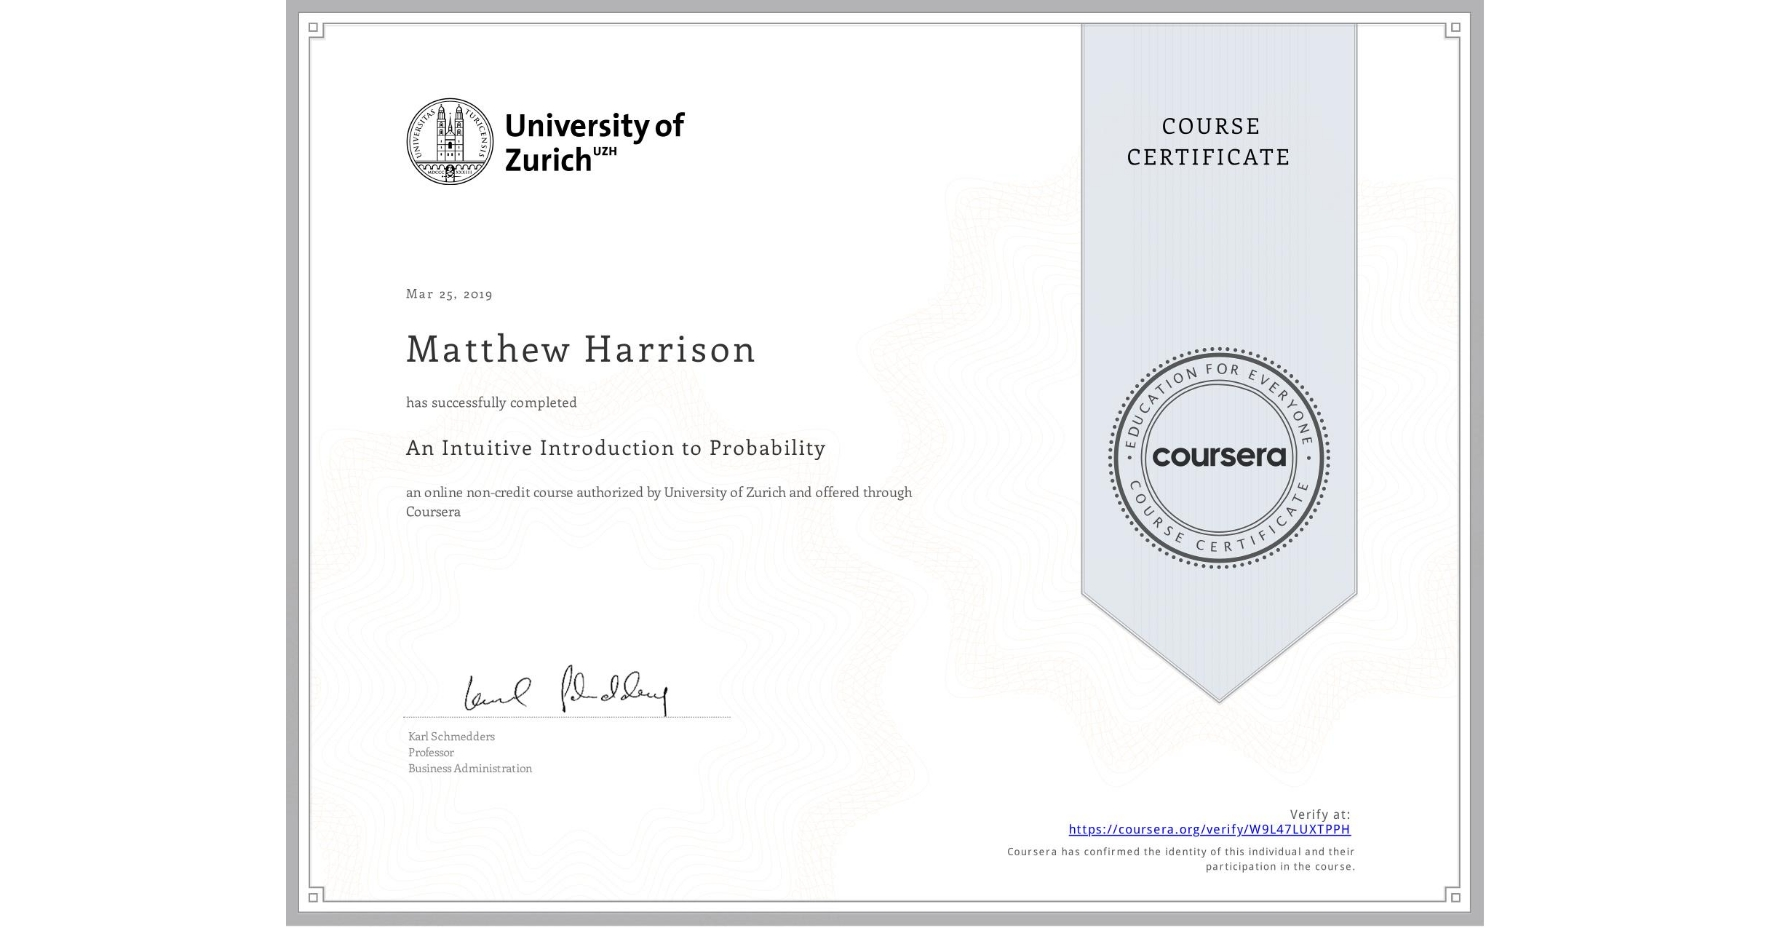 View certificate for Matthew Harrison, An Intuitive Introduction to Probability, an online non-credit course authorized by University of Zurich and offered through Coursera